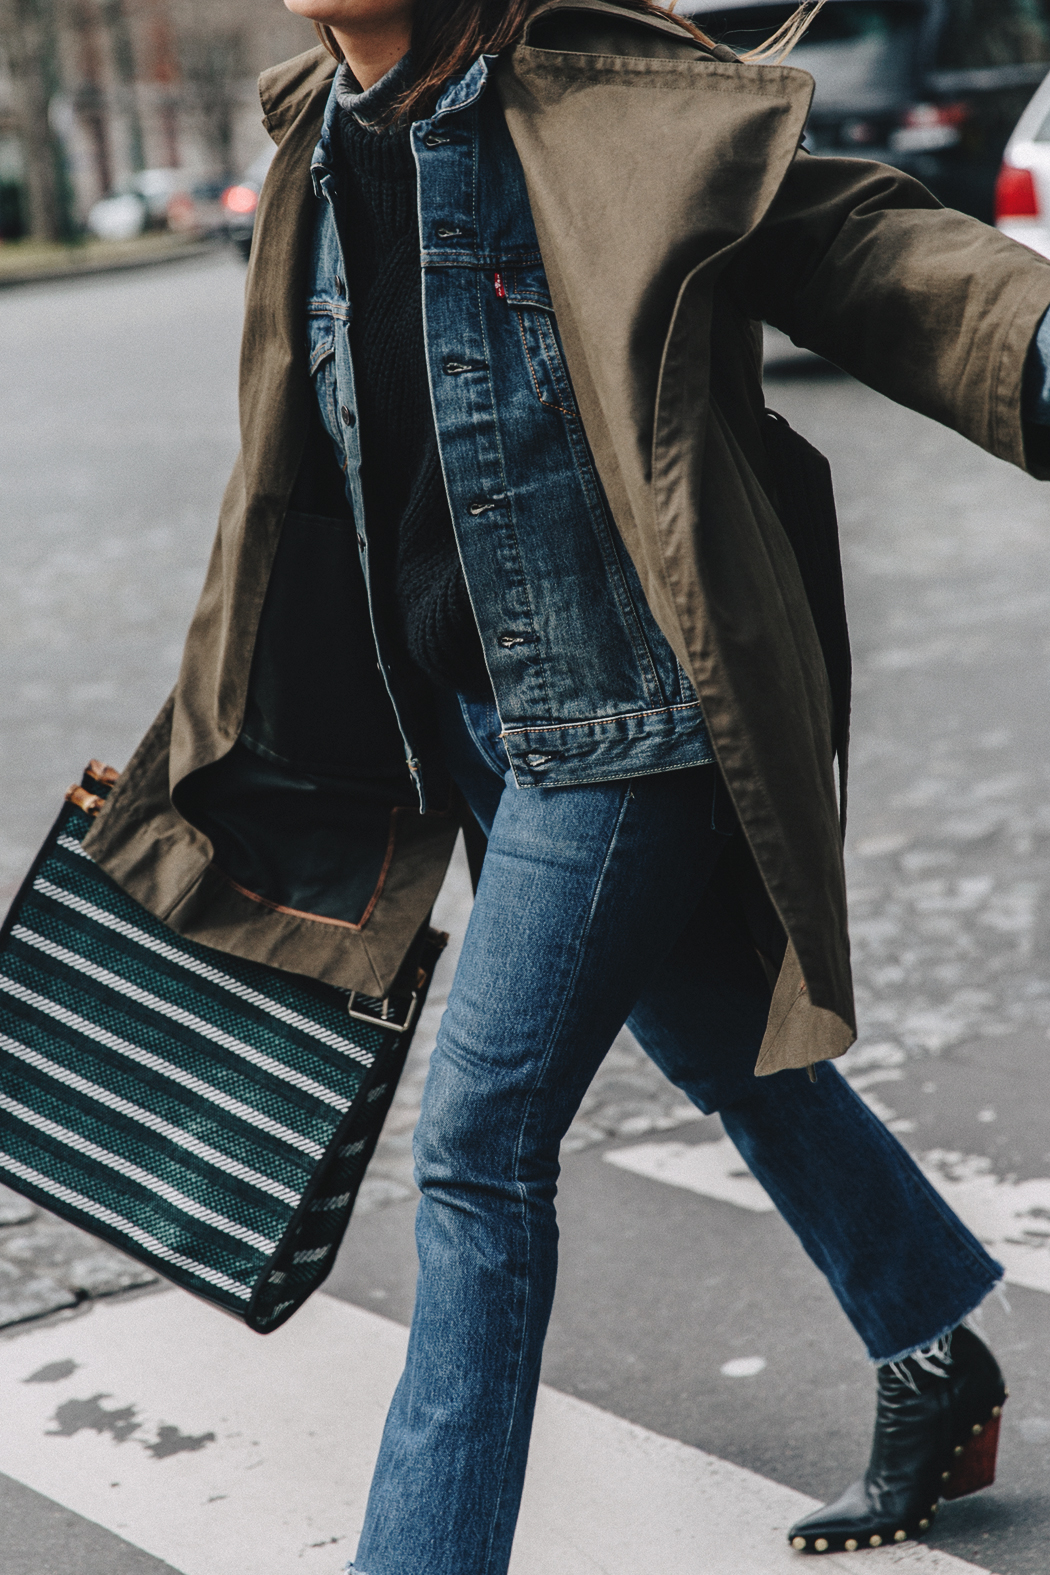 Layers-Denim_Levis-Parka-Striiped_Basket-Outfit-Celine_Boots-Street_Style-1